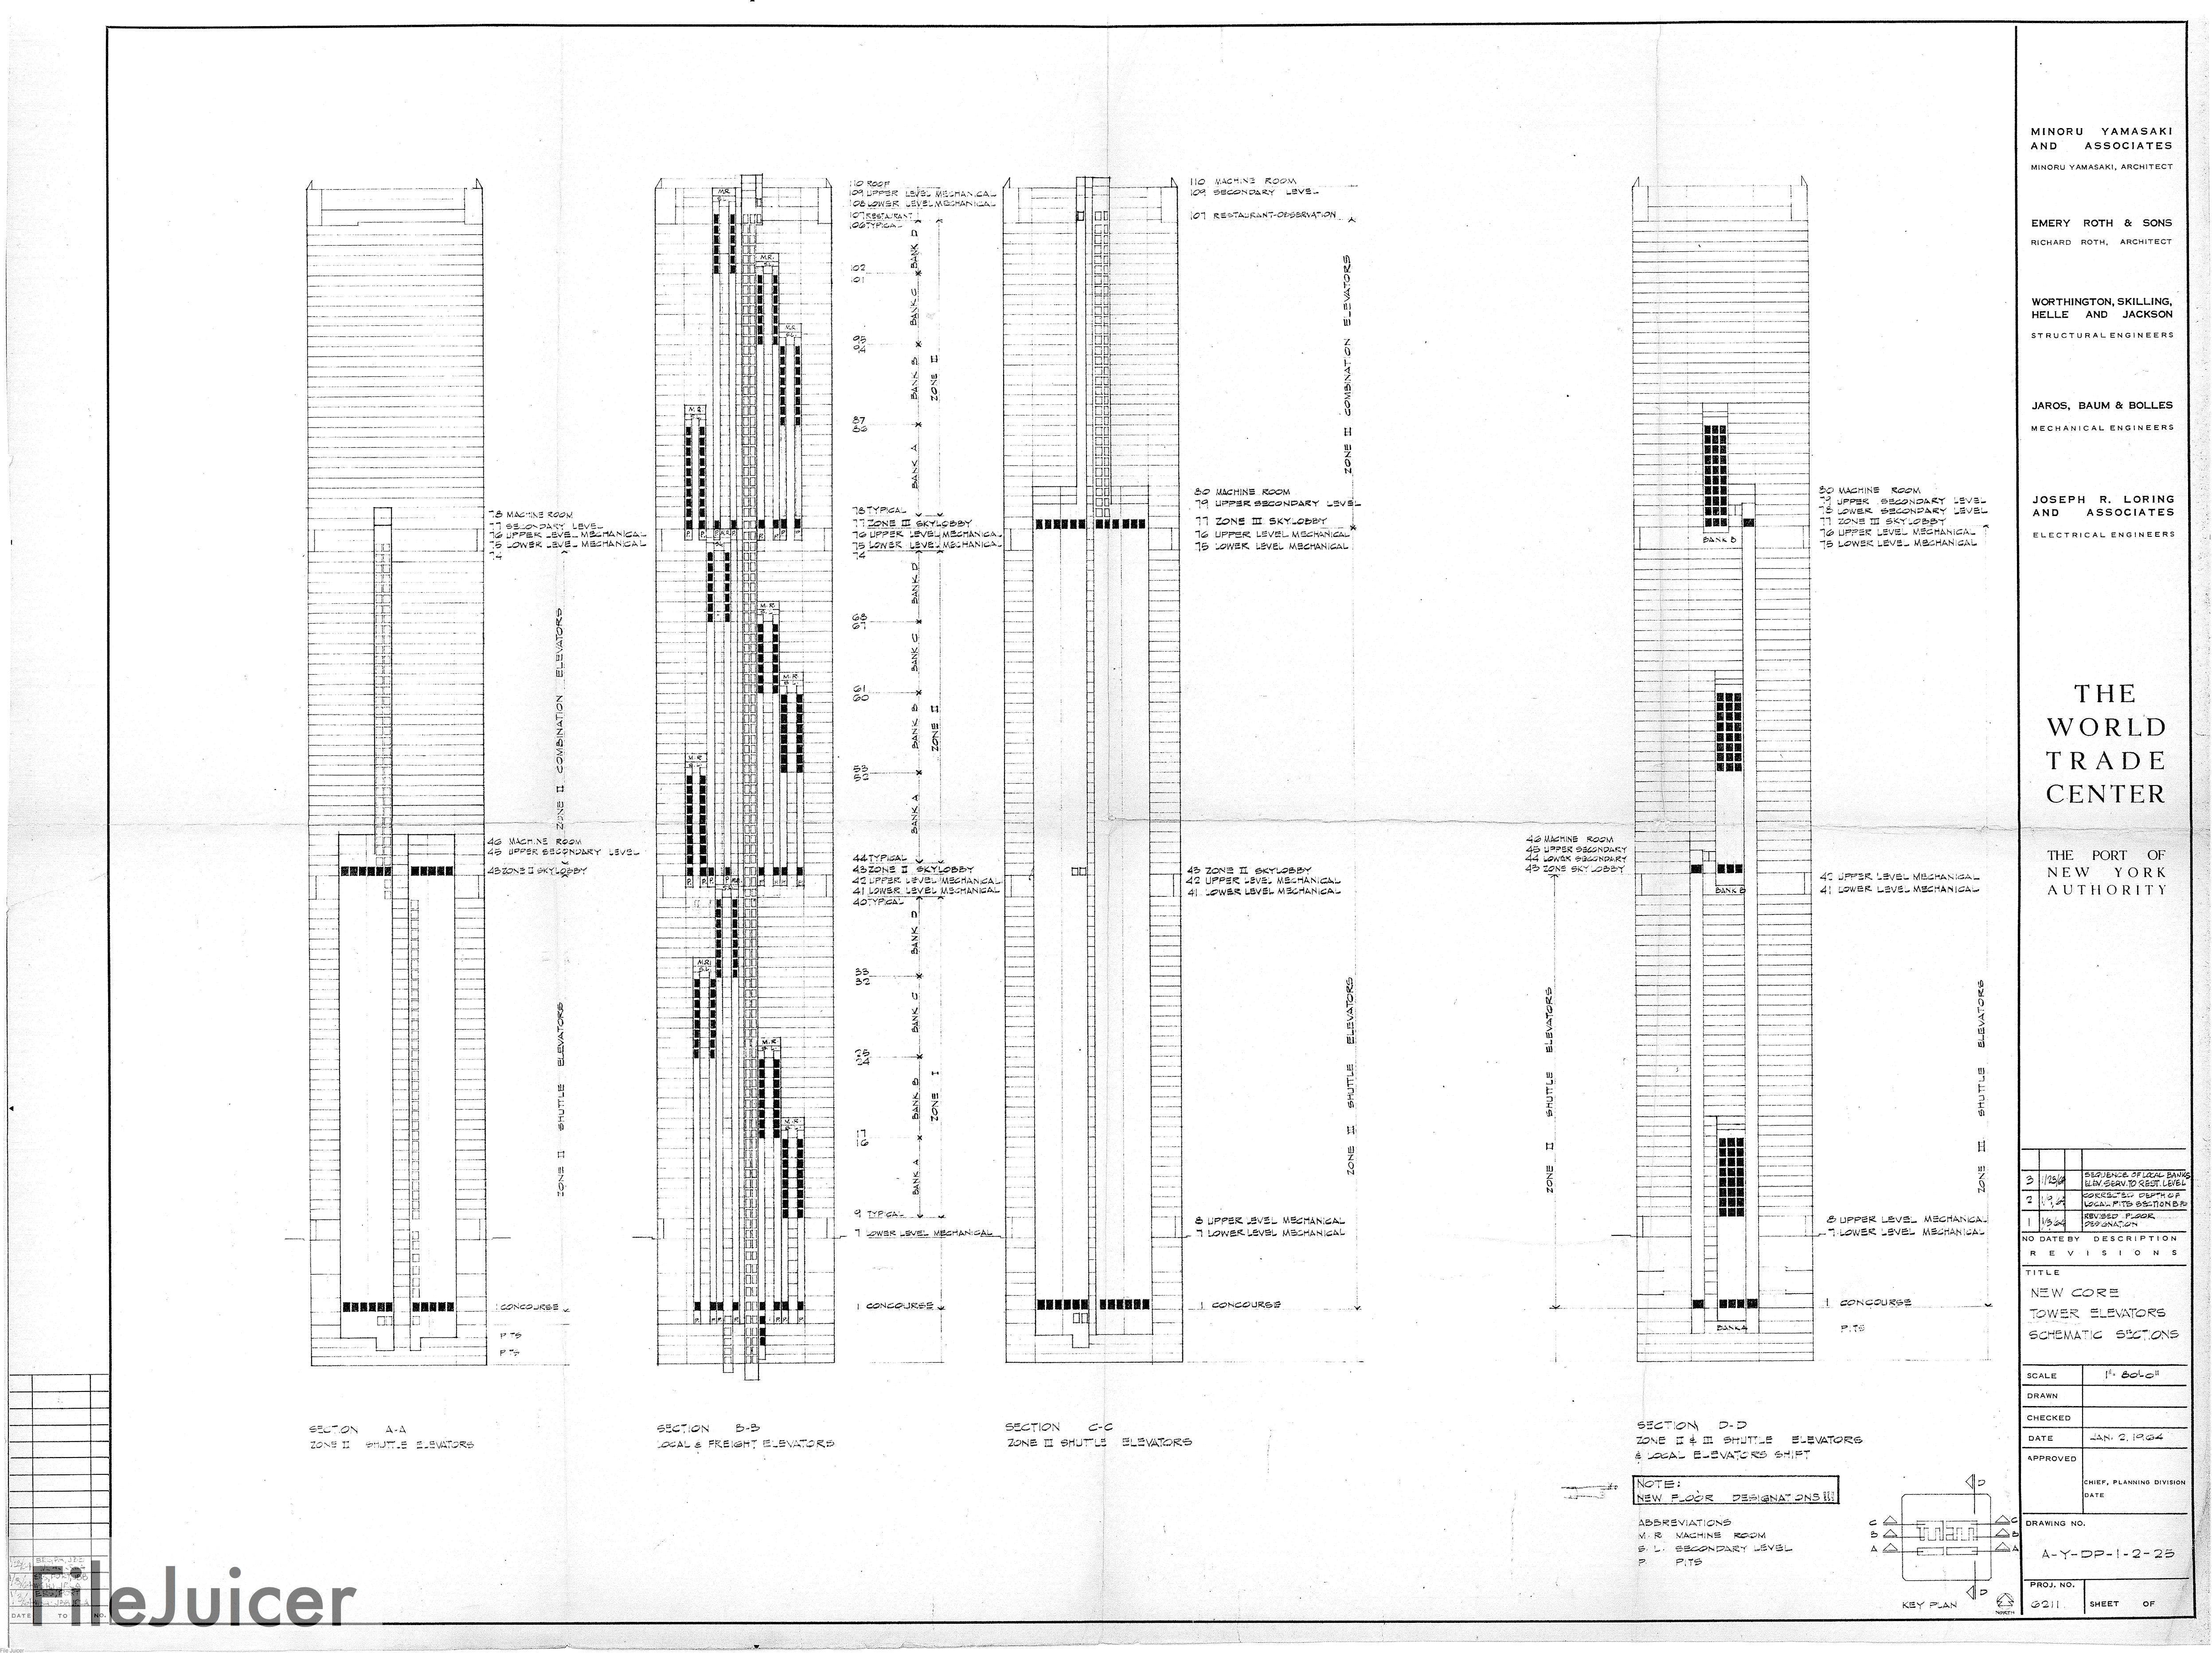 9 11 Research North Tower Blueprints